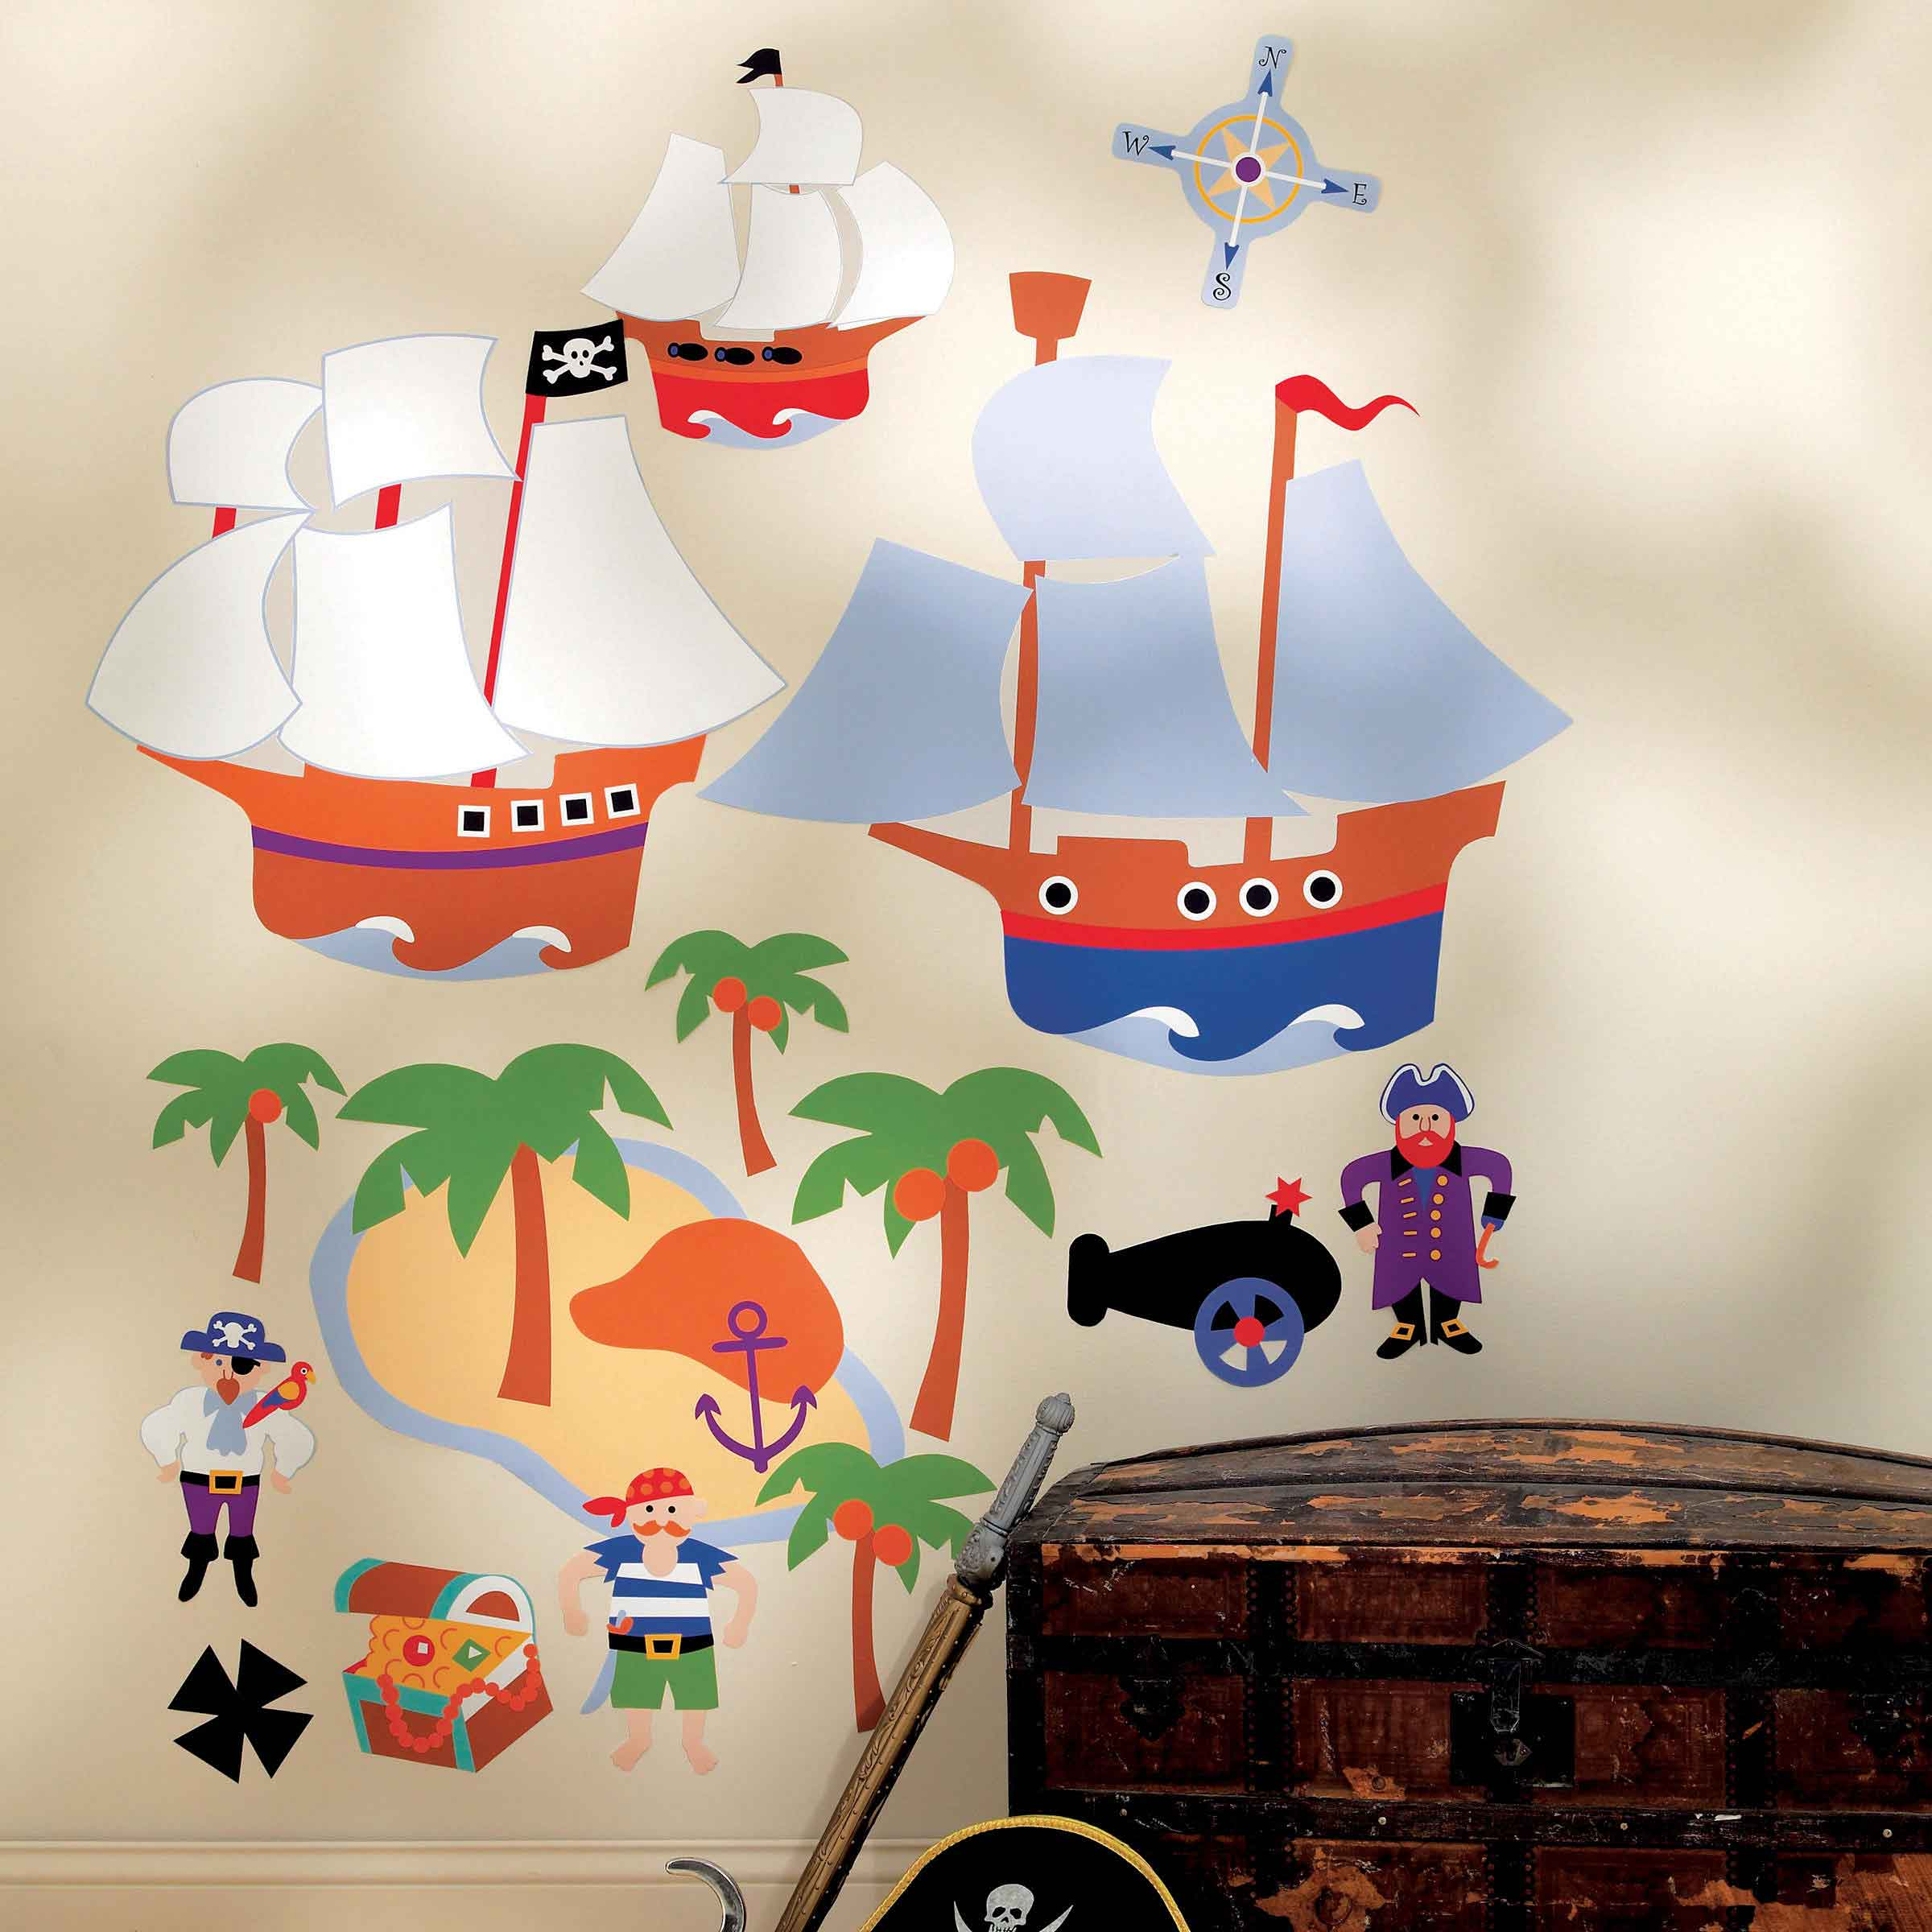 wandsticker wandbild piraten kinderzimmer kinderzimmer. Black Bedroom Furniture Sets. Home Design Ideas